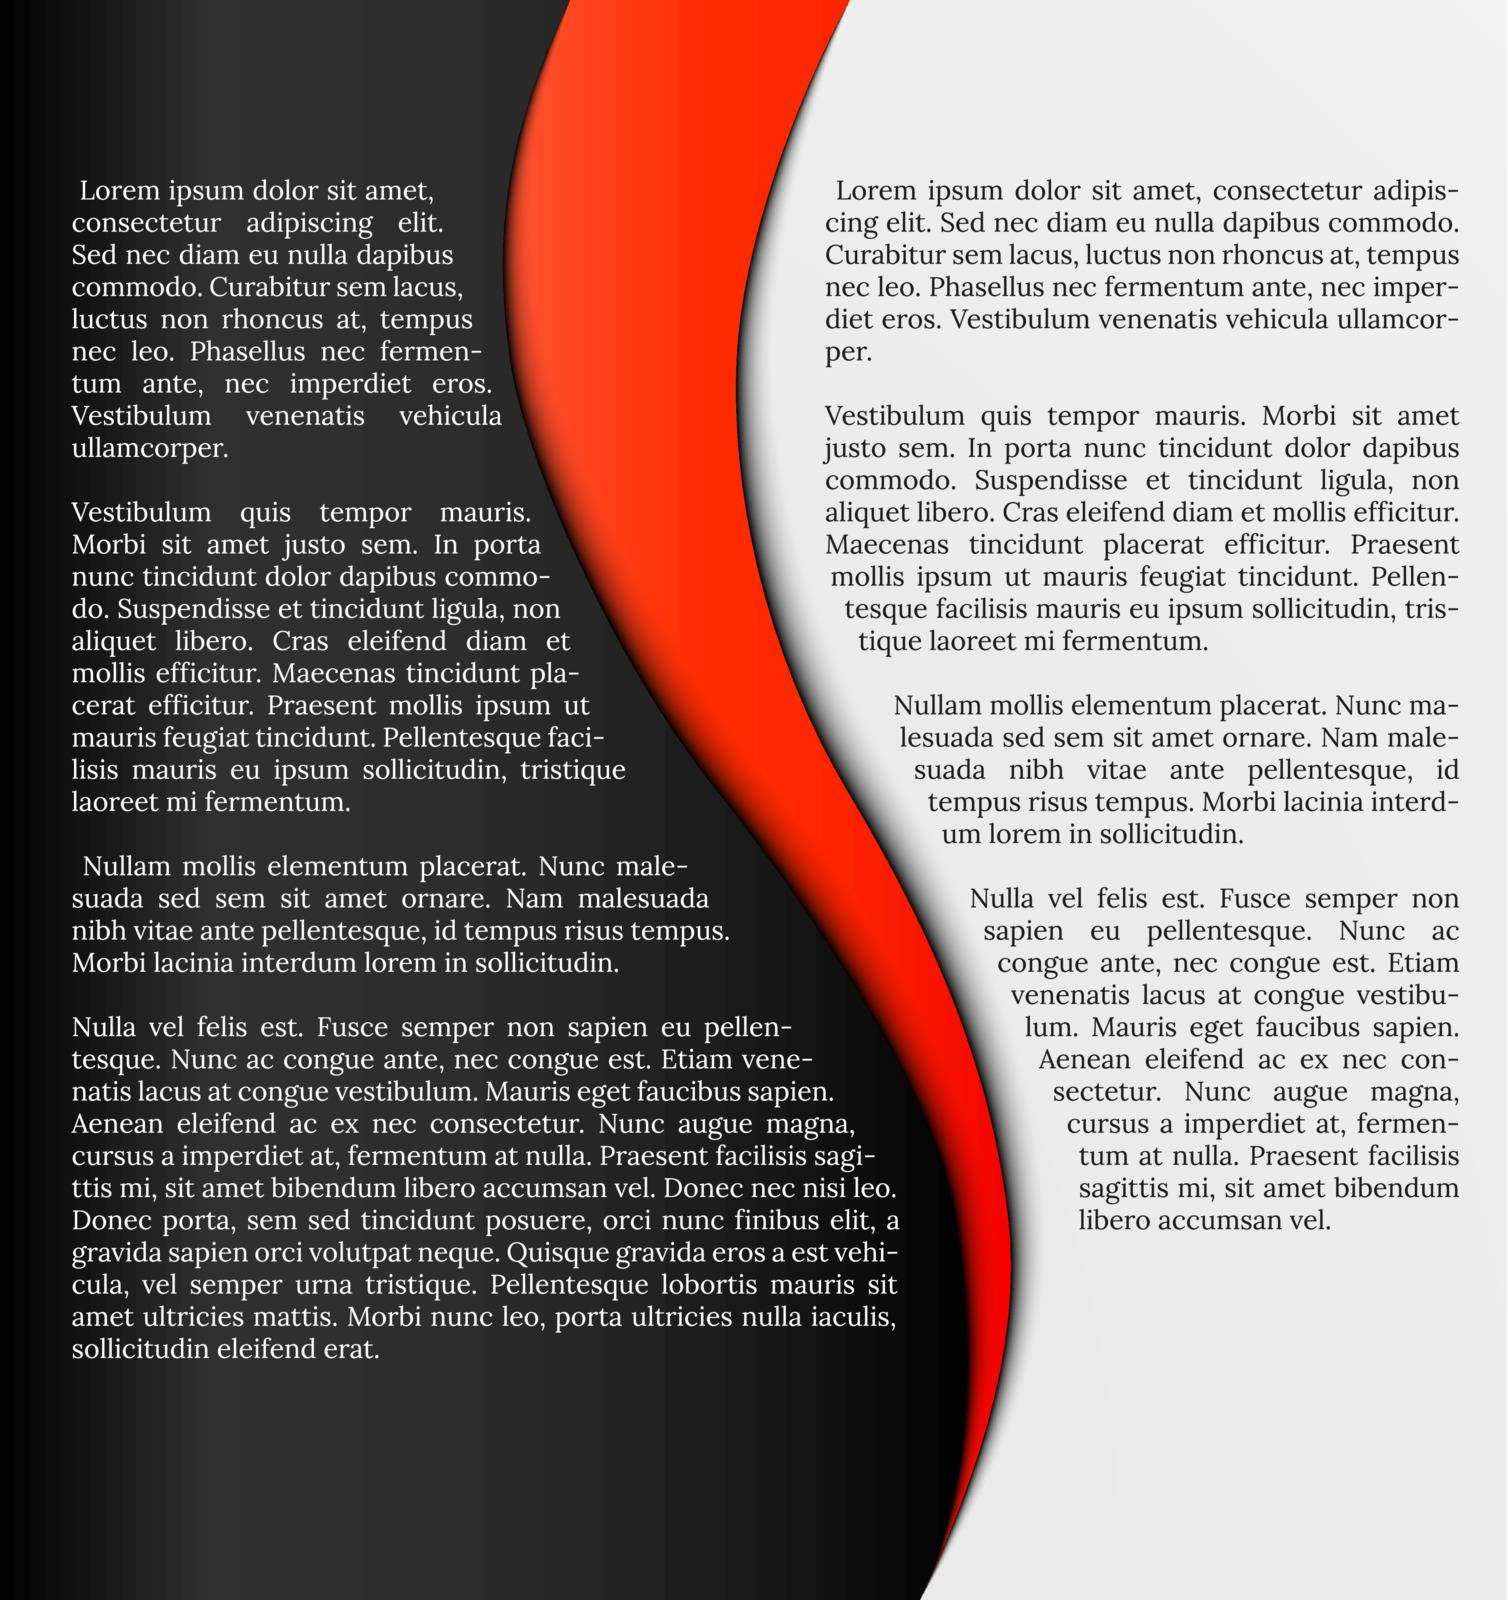 black and white infographic template with red element